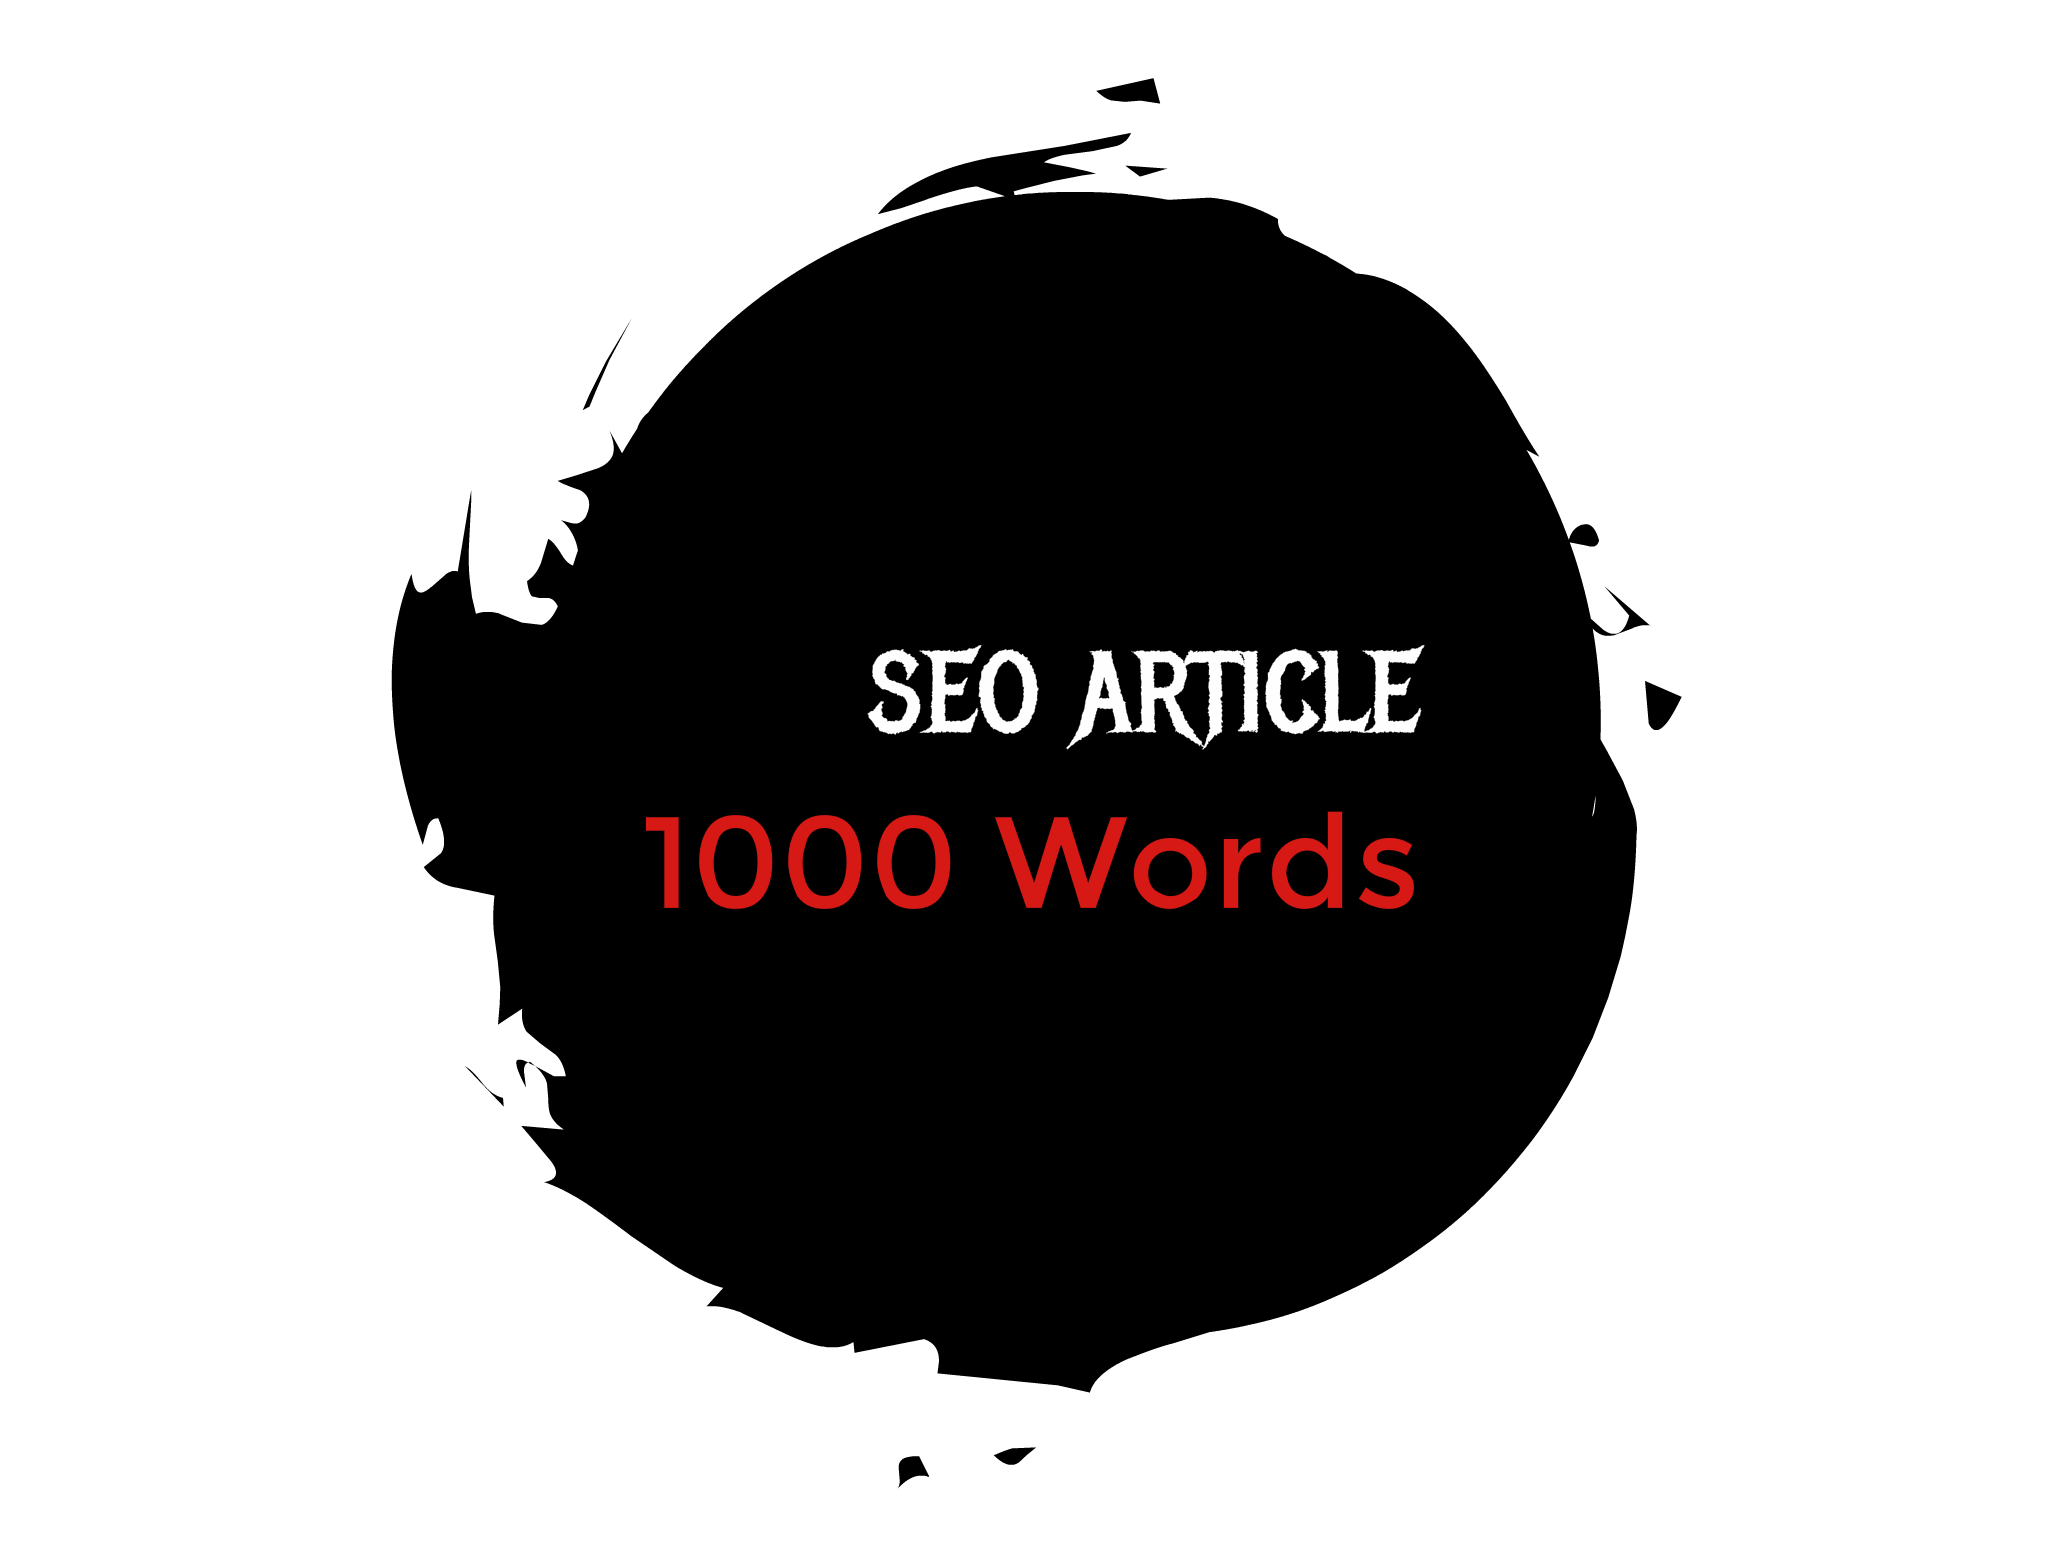 SEO Article 1000 Words